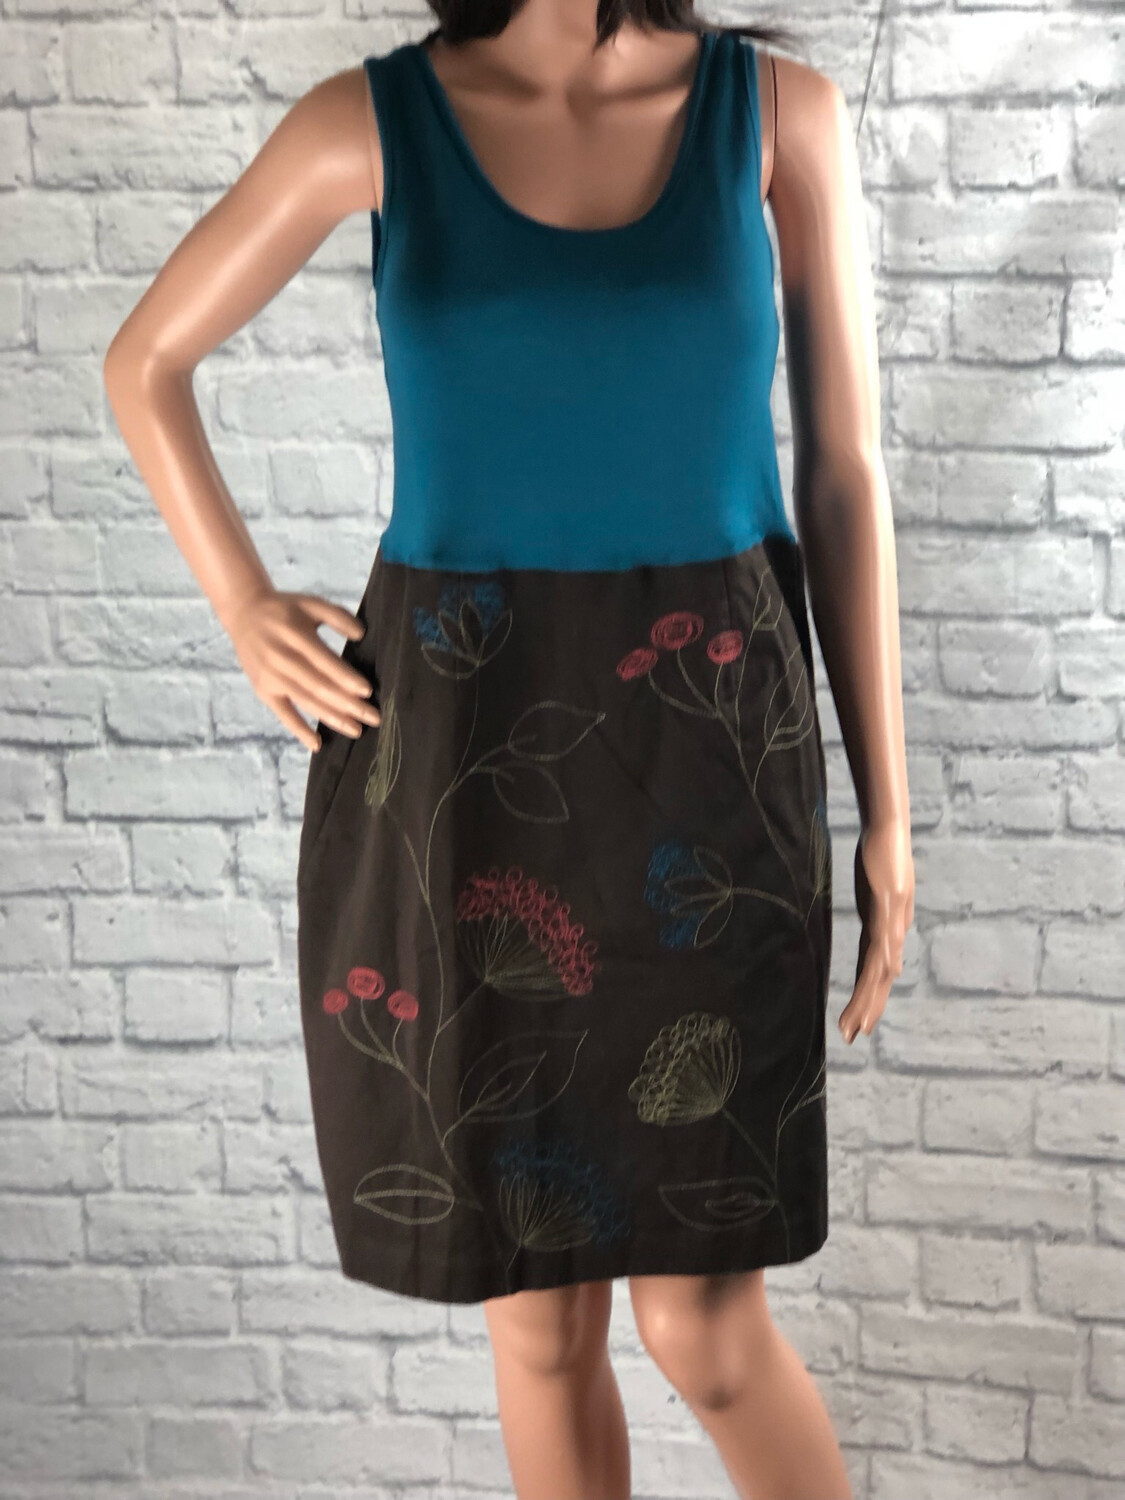 S Threads Upcycled Dress Embroidery Embellished Tank Dress Size S/M/L